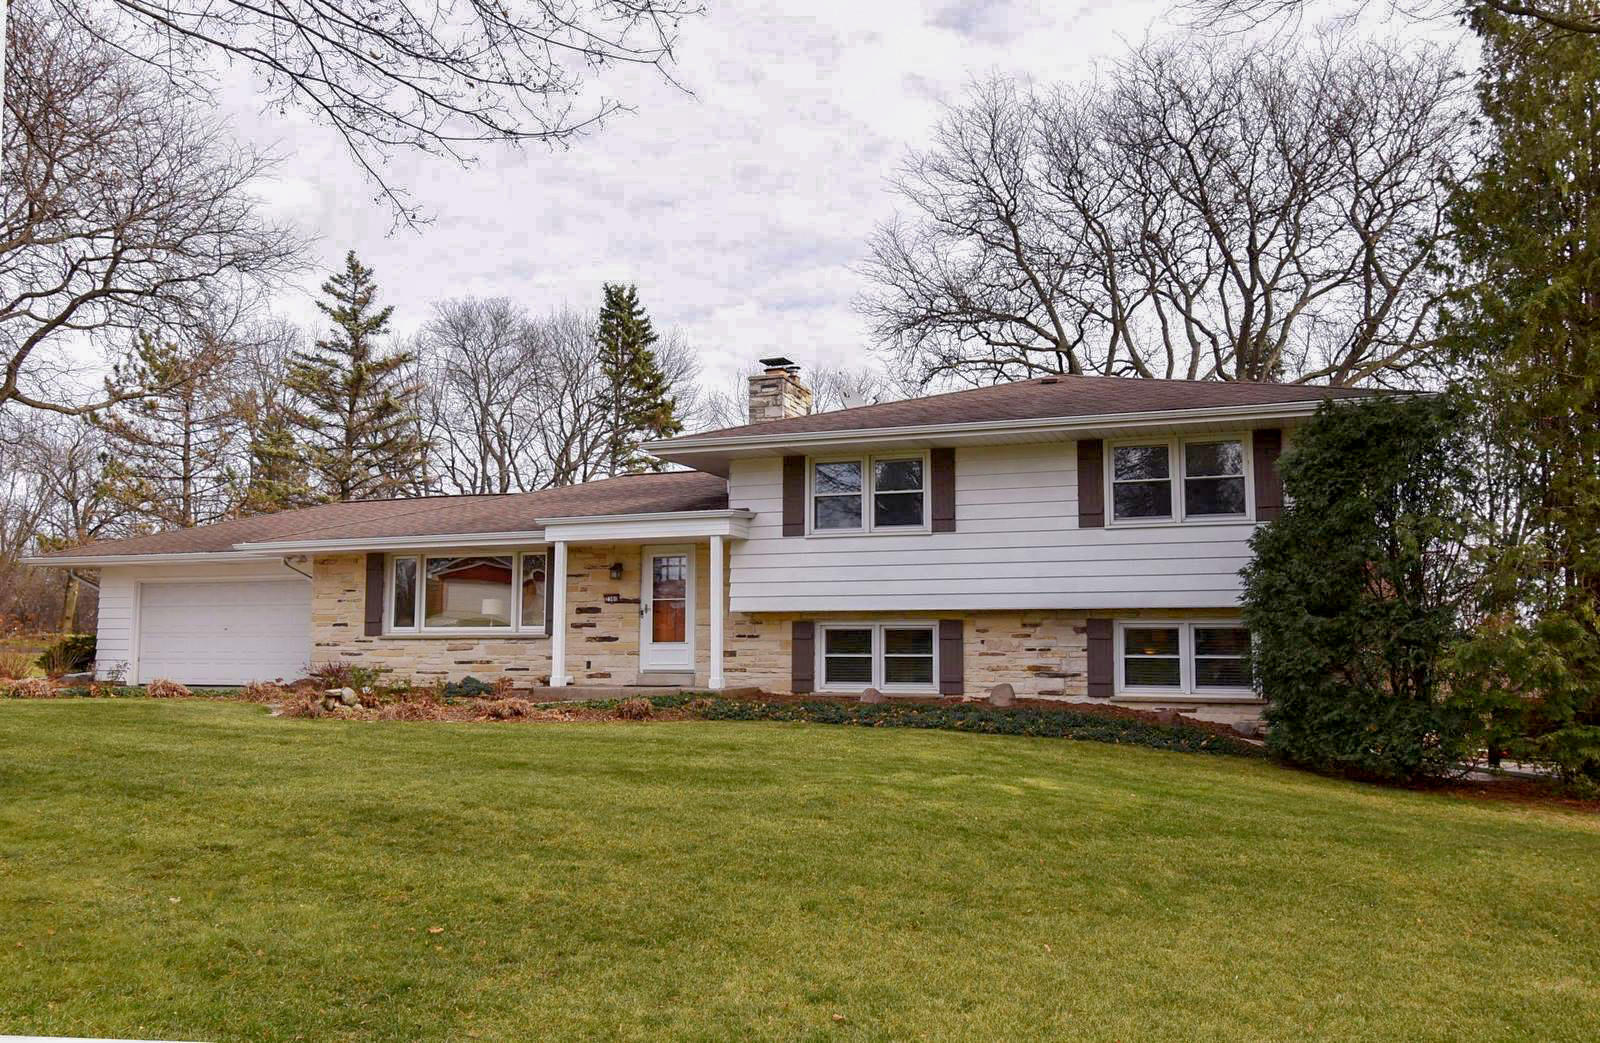 2360 Alta Louise Pkwy, Brookfield, Wisconsin 53045, 3 Bedrooms Bedrooms, 8 Rooms Rooms,2 BathroomsBathrooms,Single-Family,For Sale,Alta Louise Pkwy,1720410